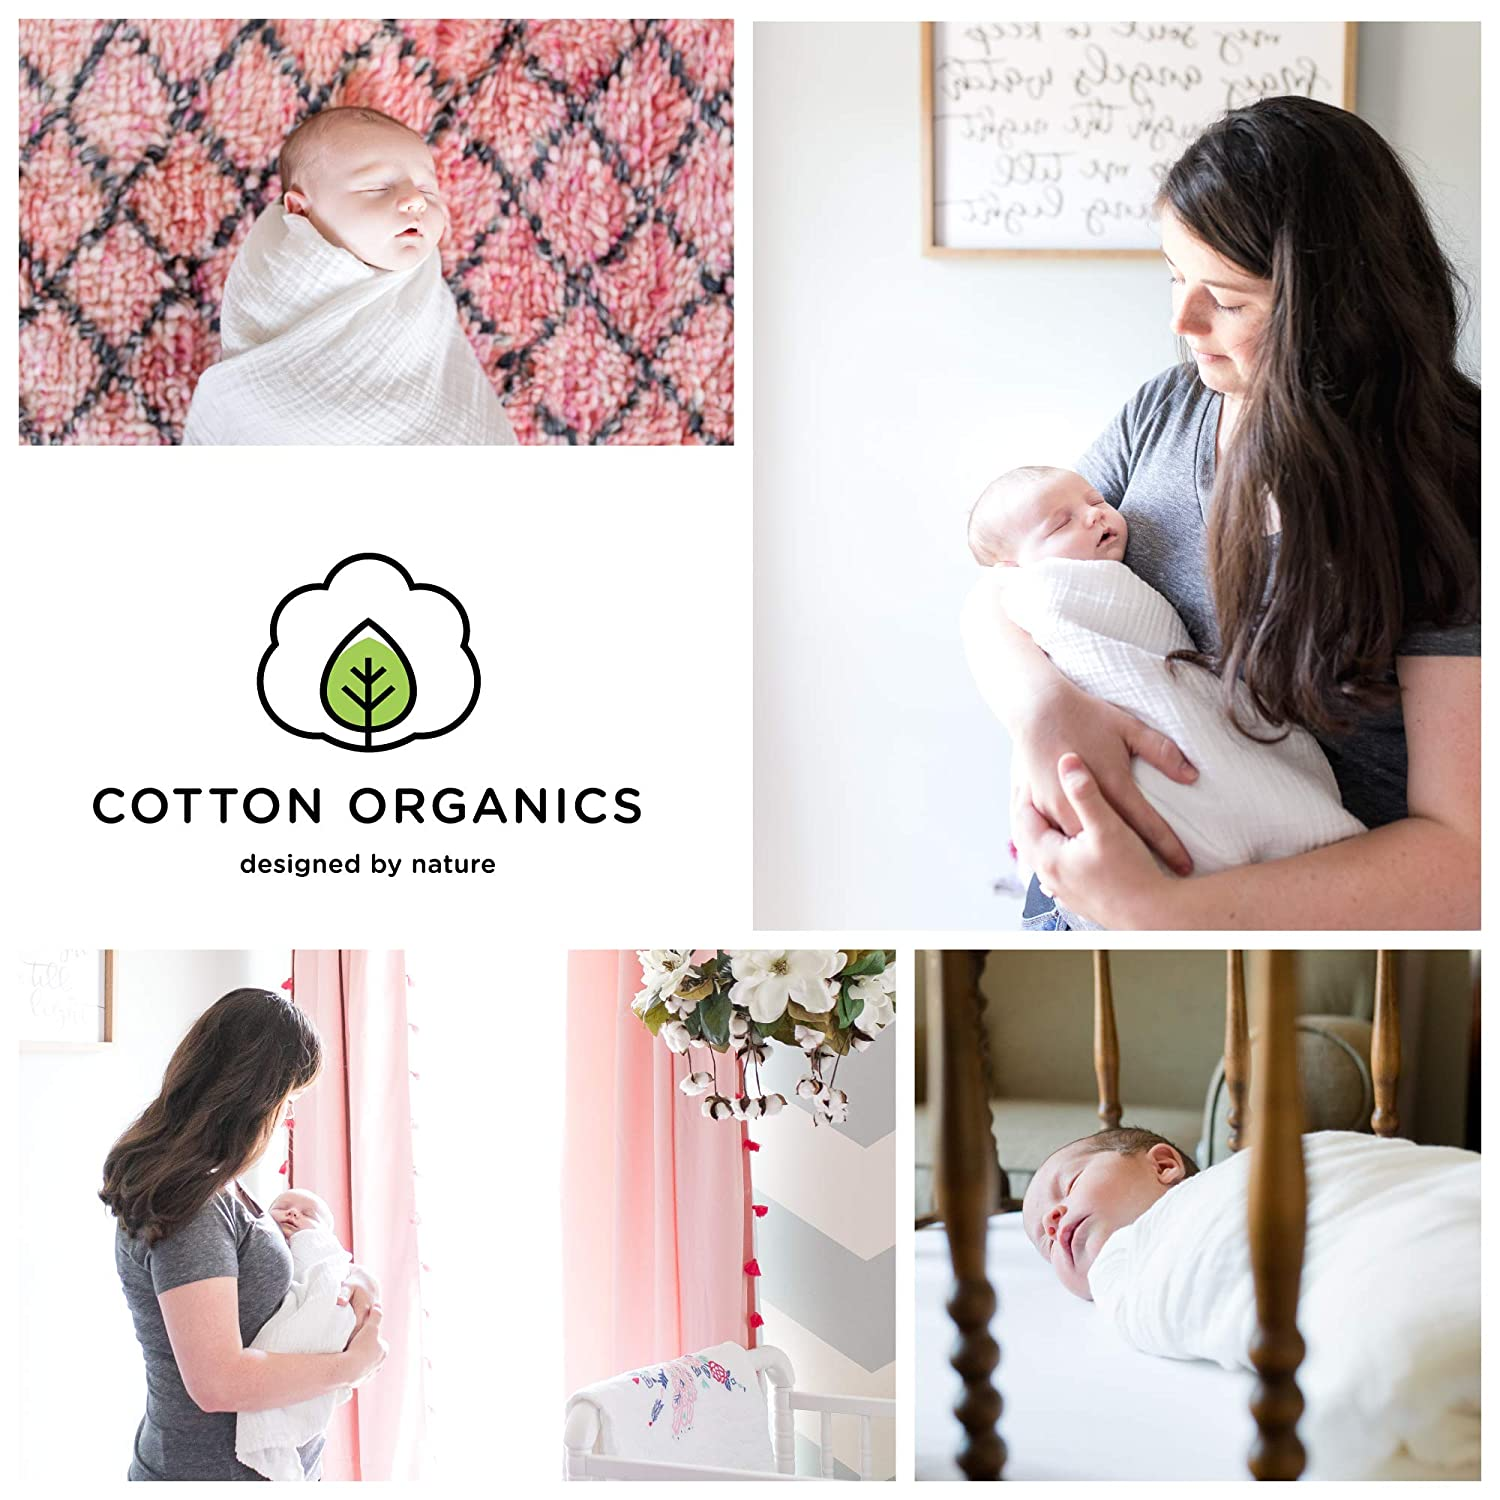 Extra Soft and Hypoallergenic Organic Cotton Unisex White Crib Sheet for Boys or Girls Set of 2 COTTON ORGANICS Baby Crib Fitted Sheets